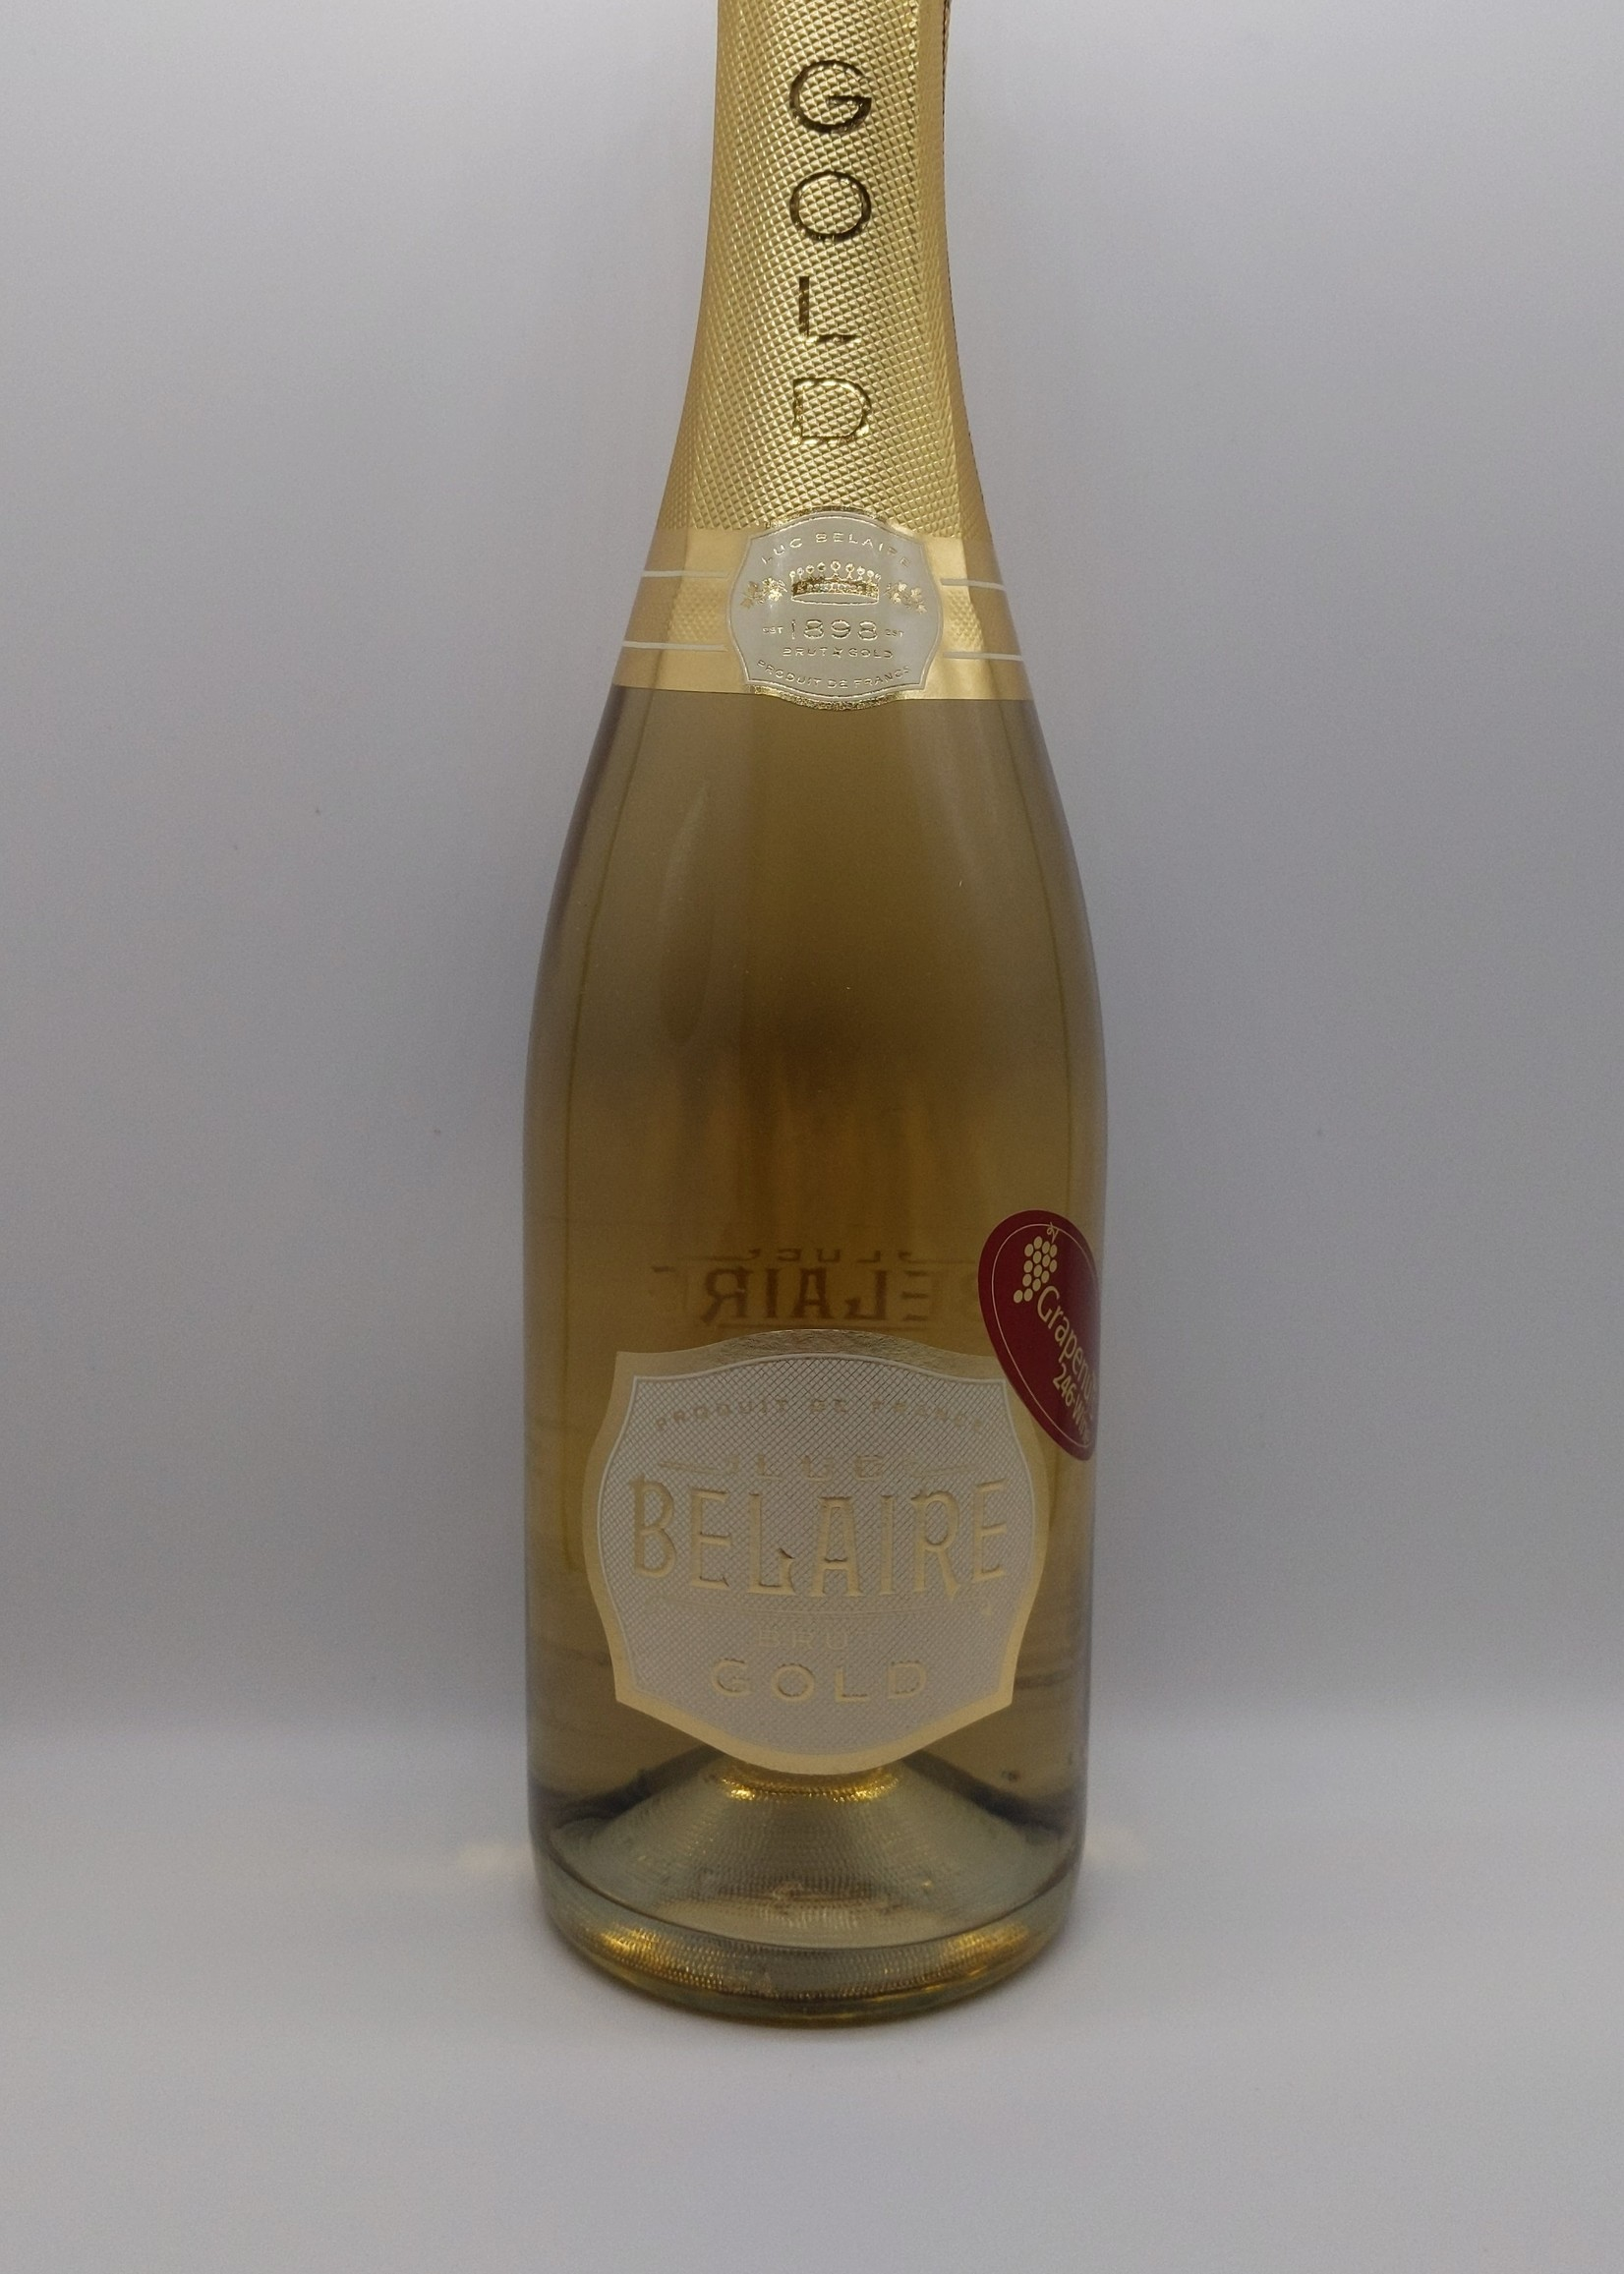 NV LUC BEL AIRE GOLD 750ml